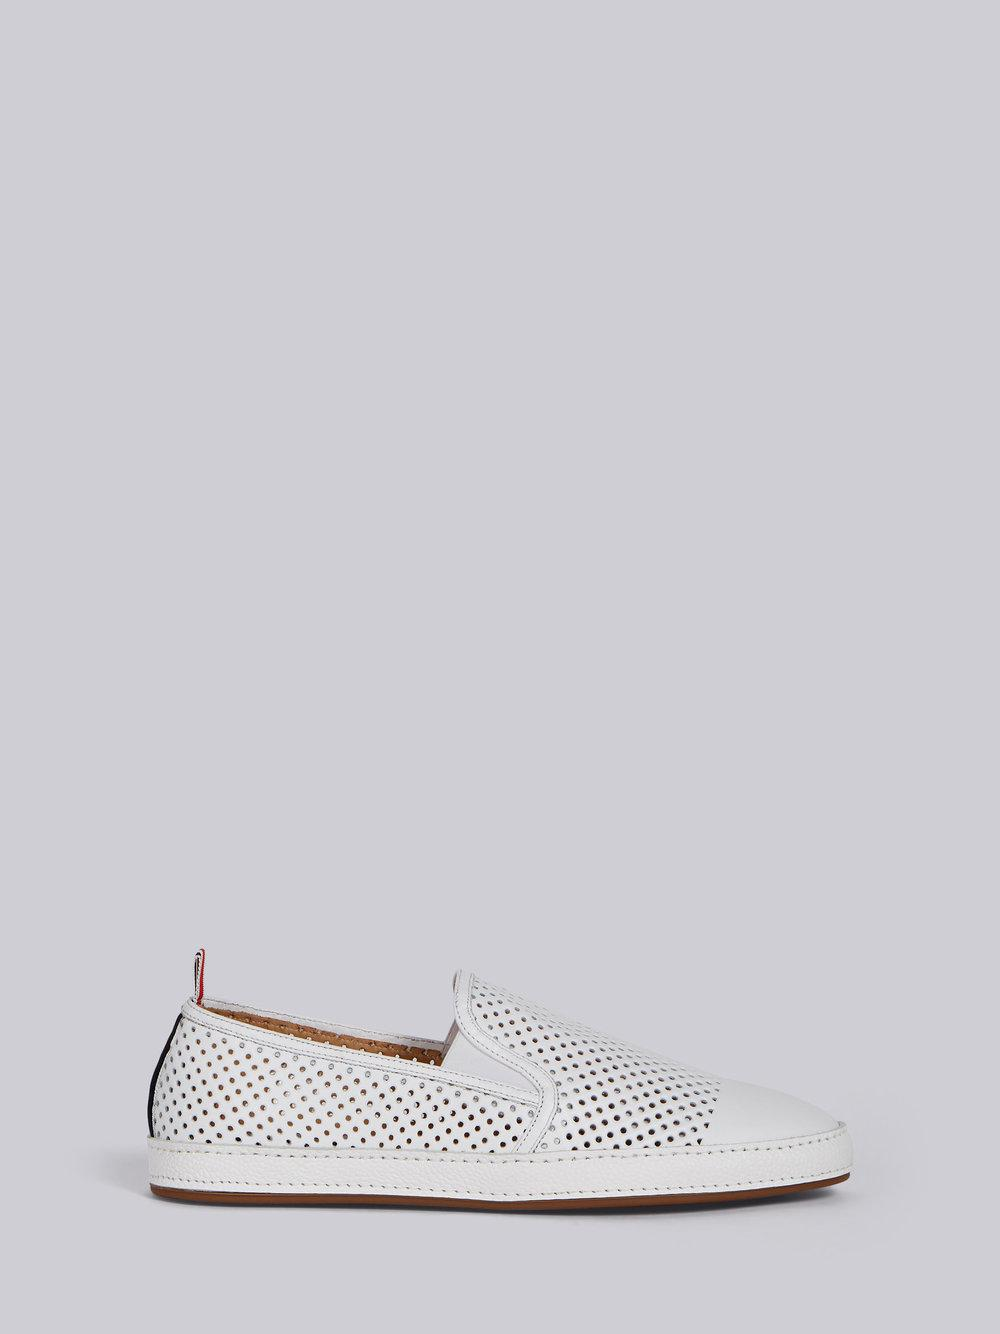 Espadrille With Leather Trim & Rubber Sole In Perforated Calf Leather - White Thom Browne MOZbgpp5wB